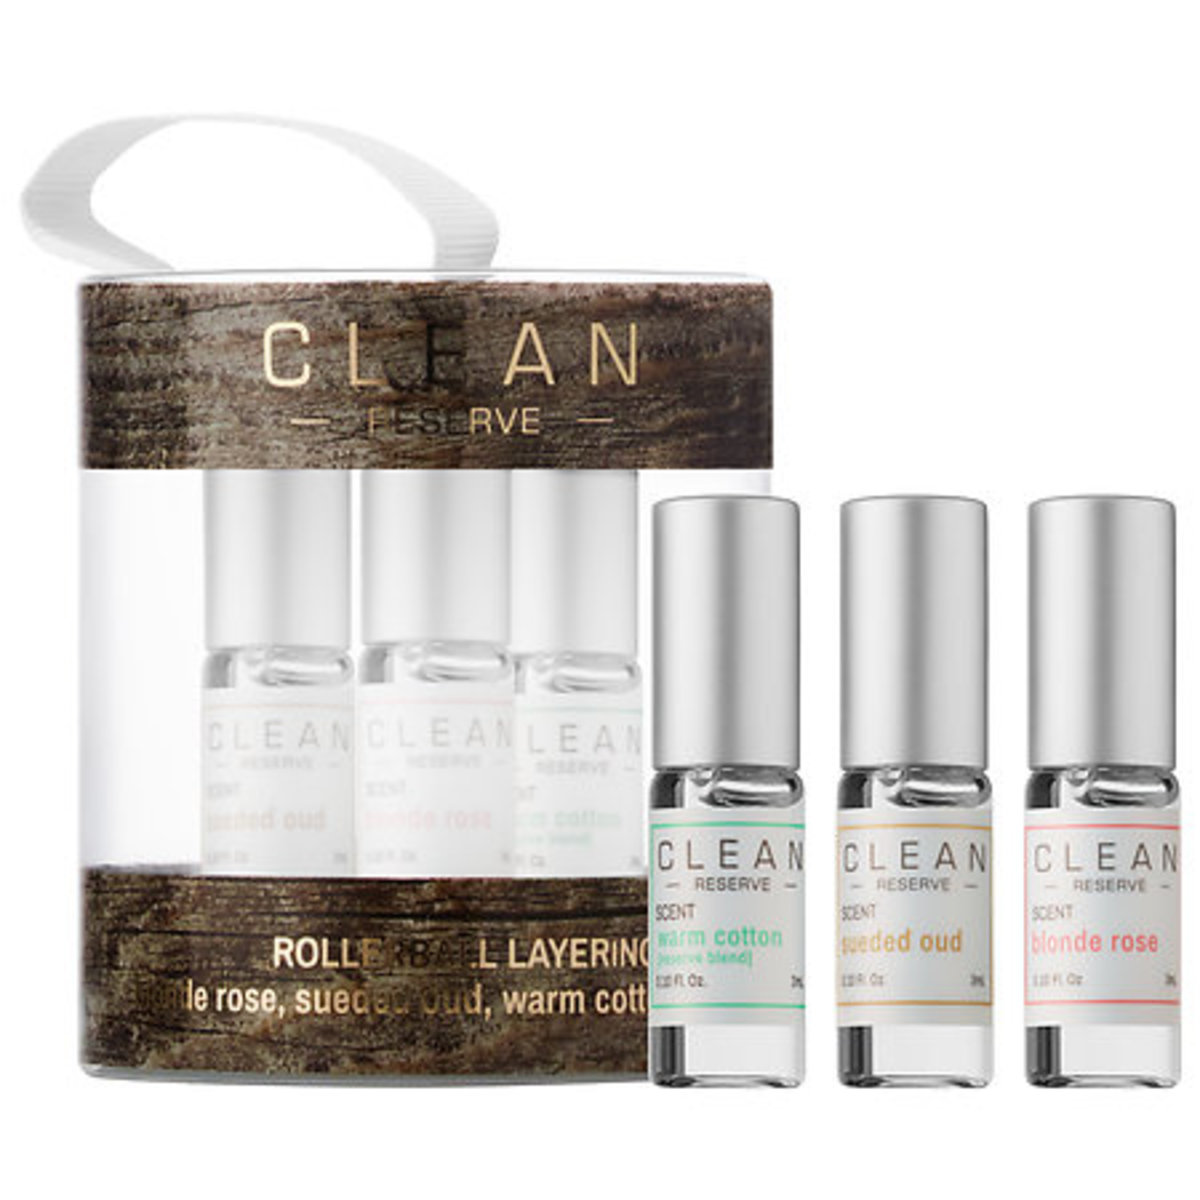 Clean Reserve Rollerball Layering Trio Ornament